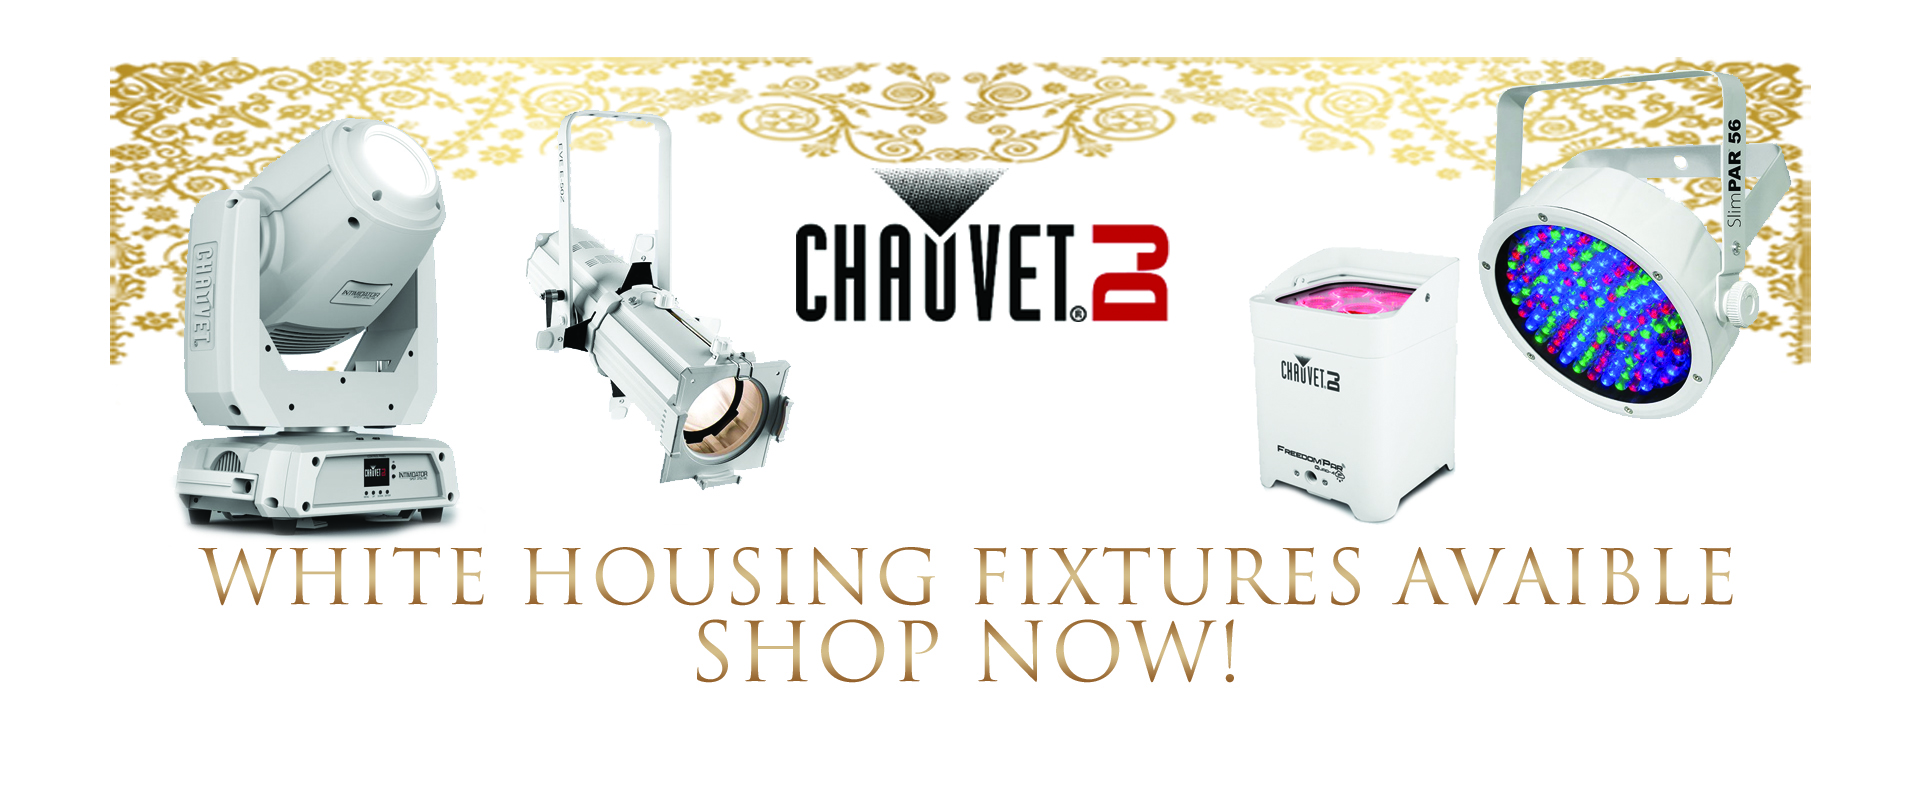 ChauvetDJ White Housing Fixtures now available!